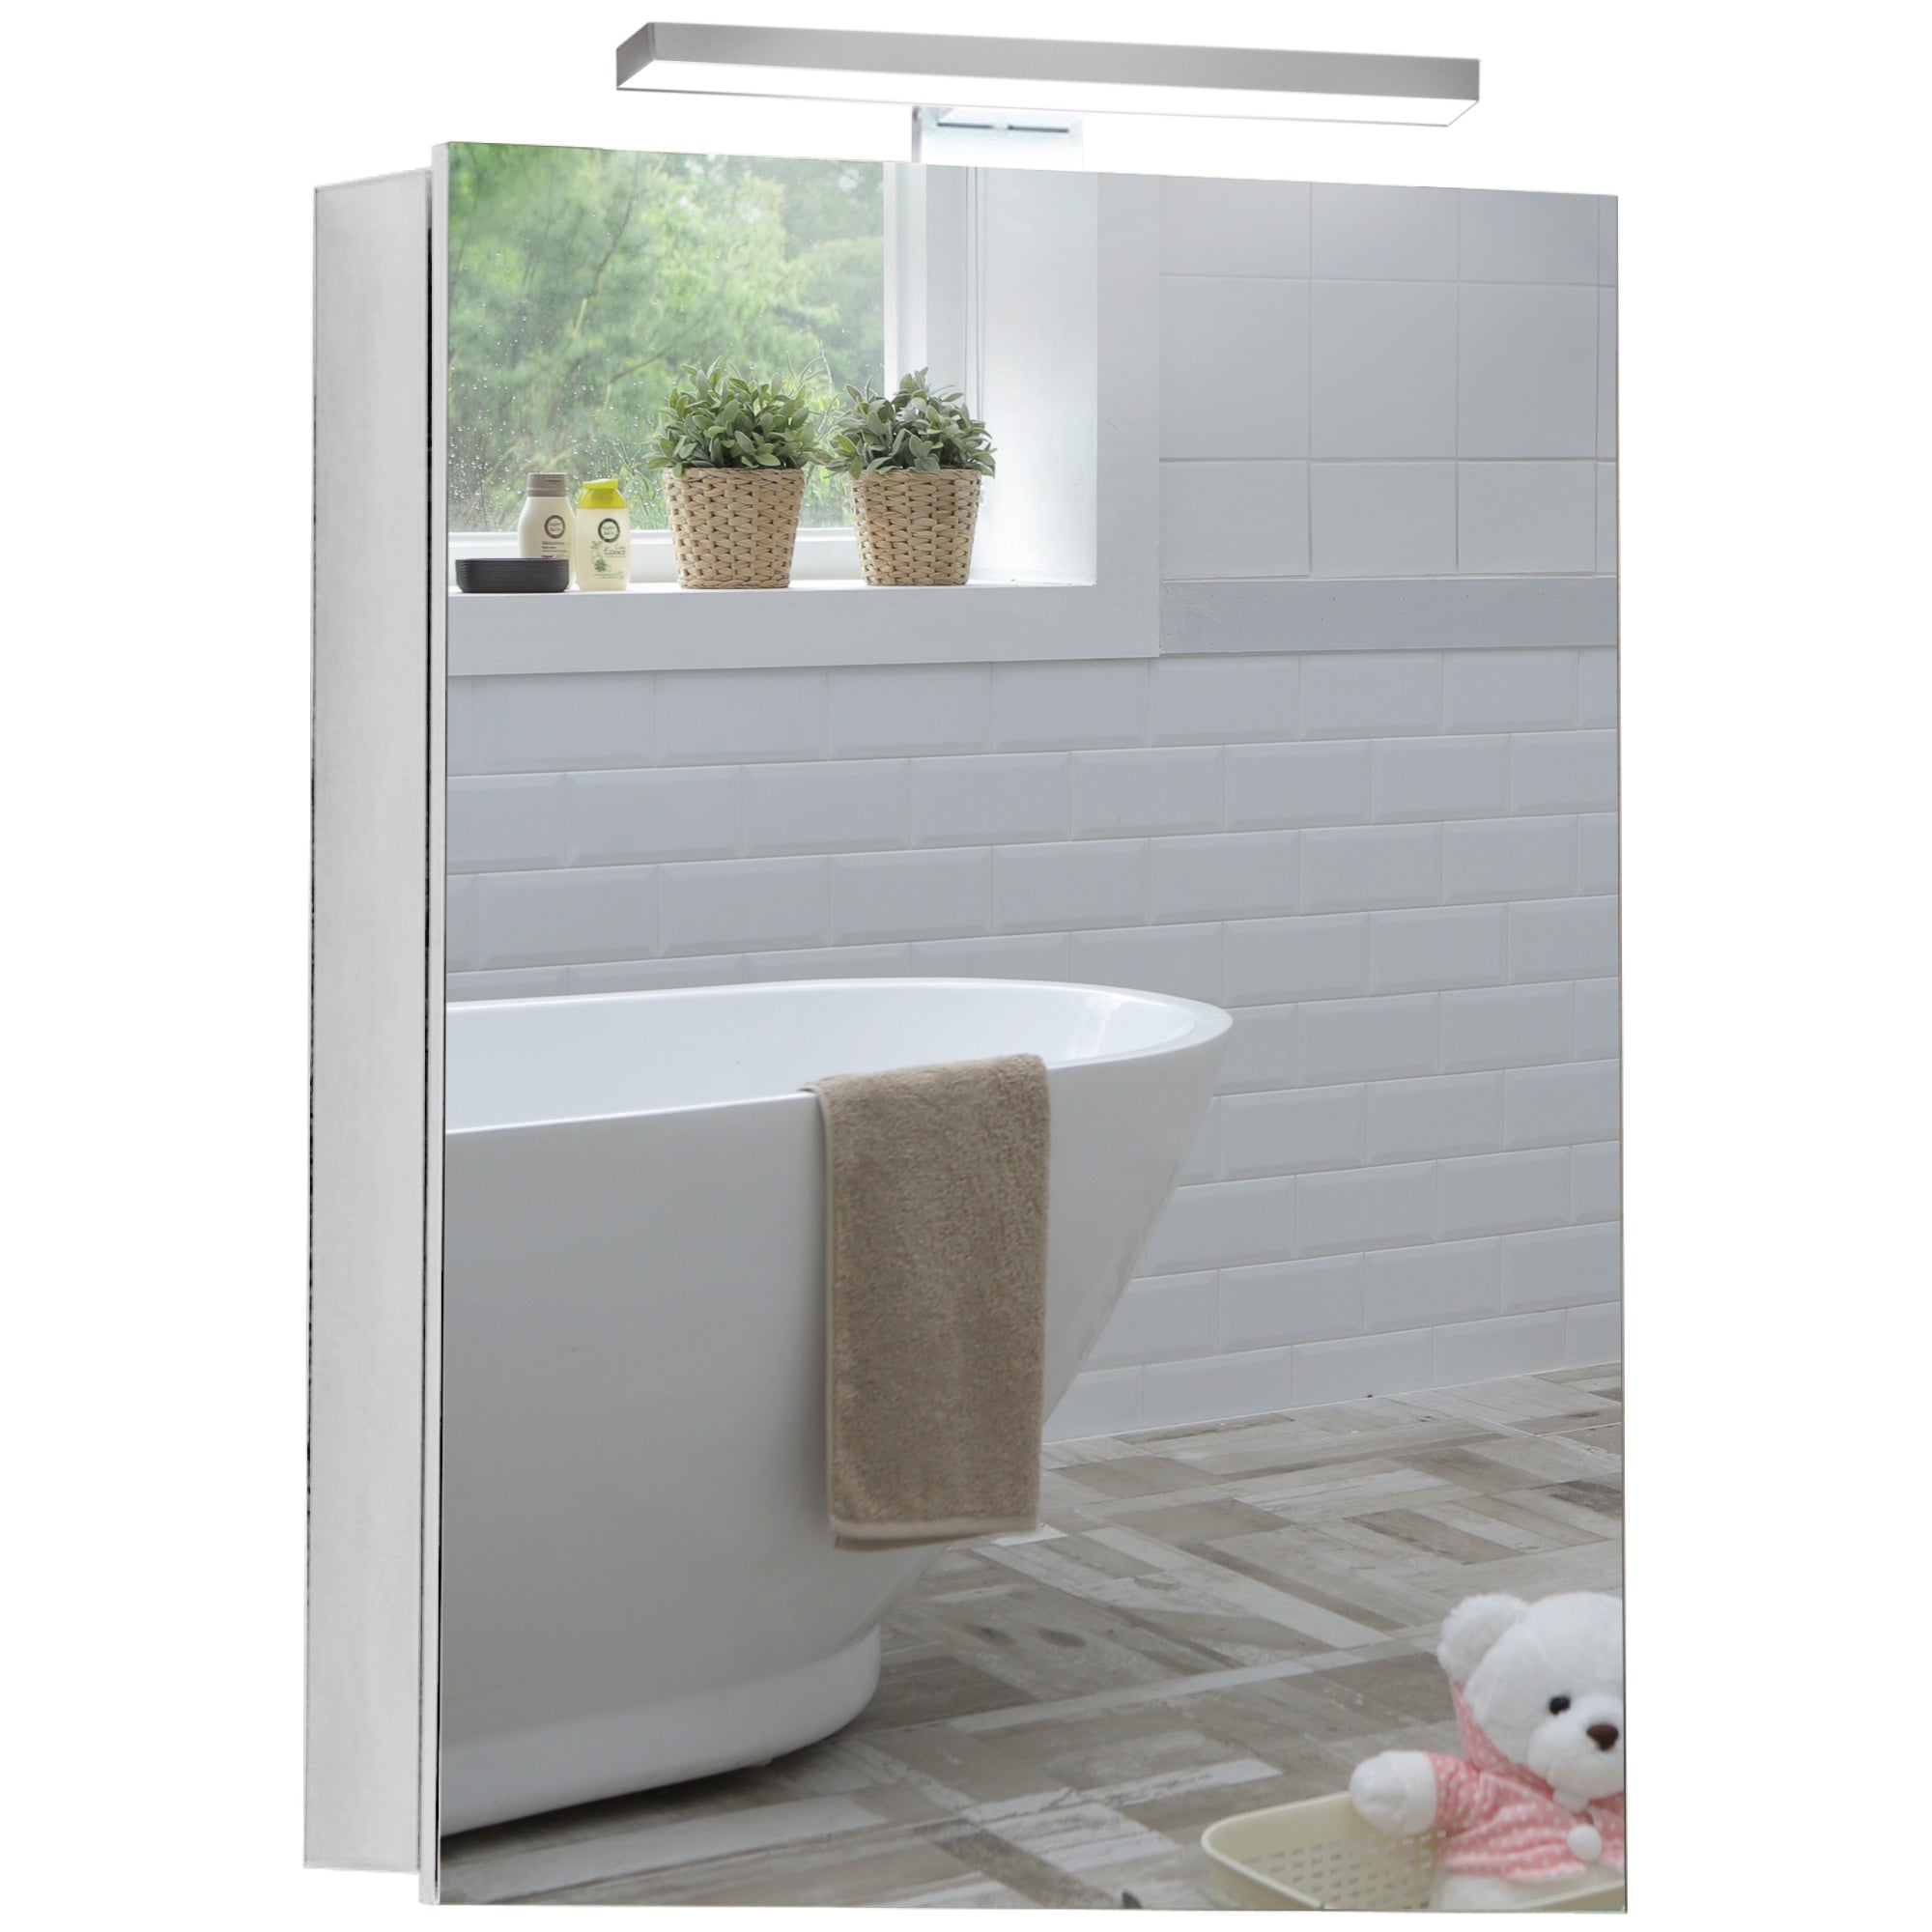 Illuminated Bathroom Mirror Cabinet CABM25 Size 70Hx50Wx15Dcm